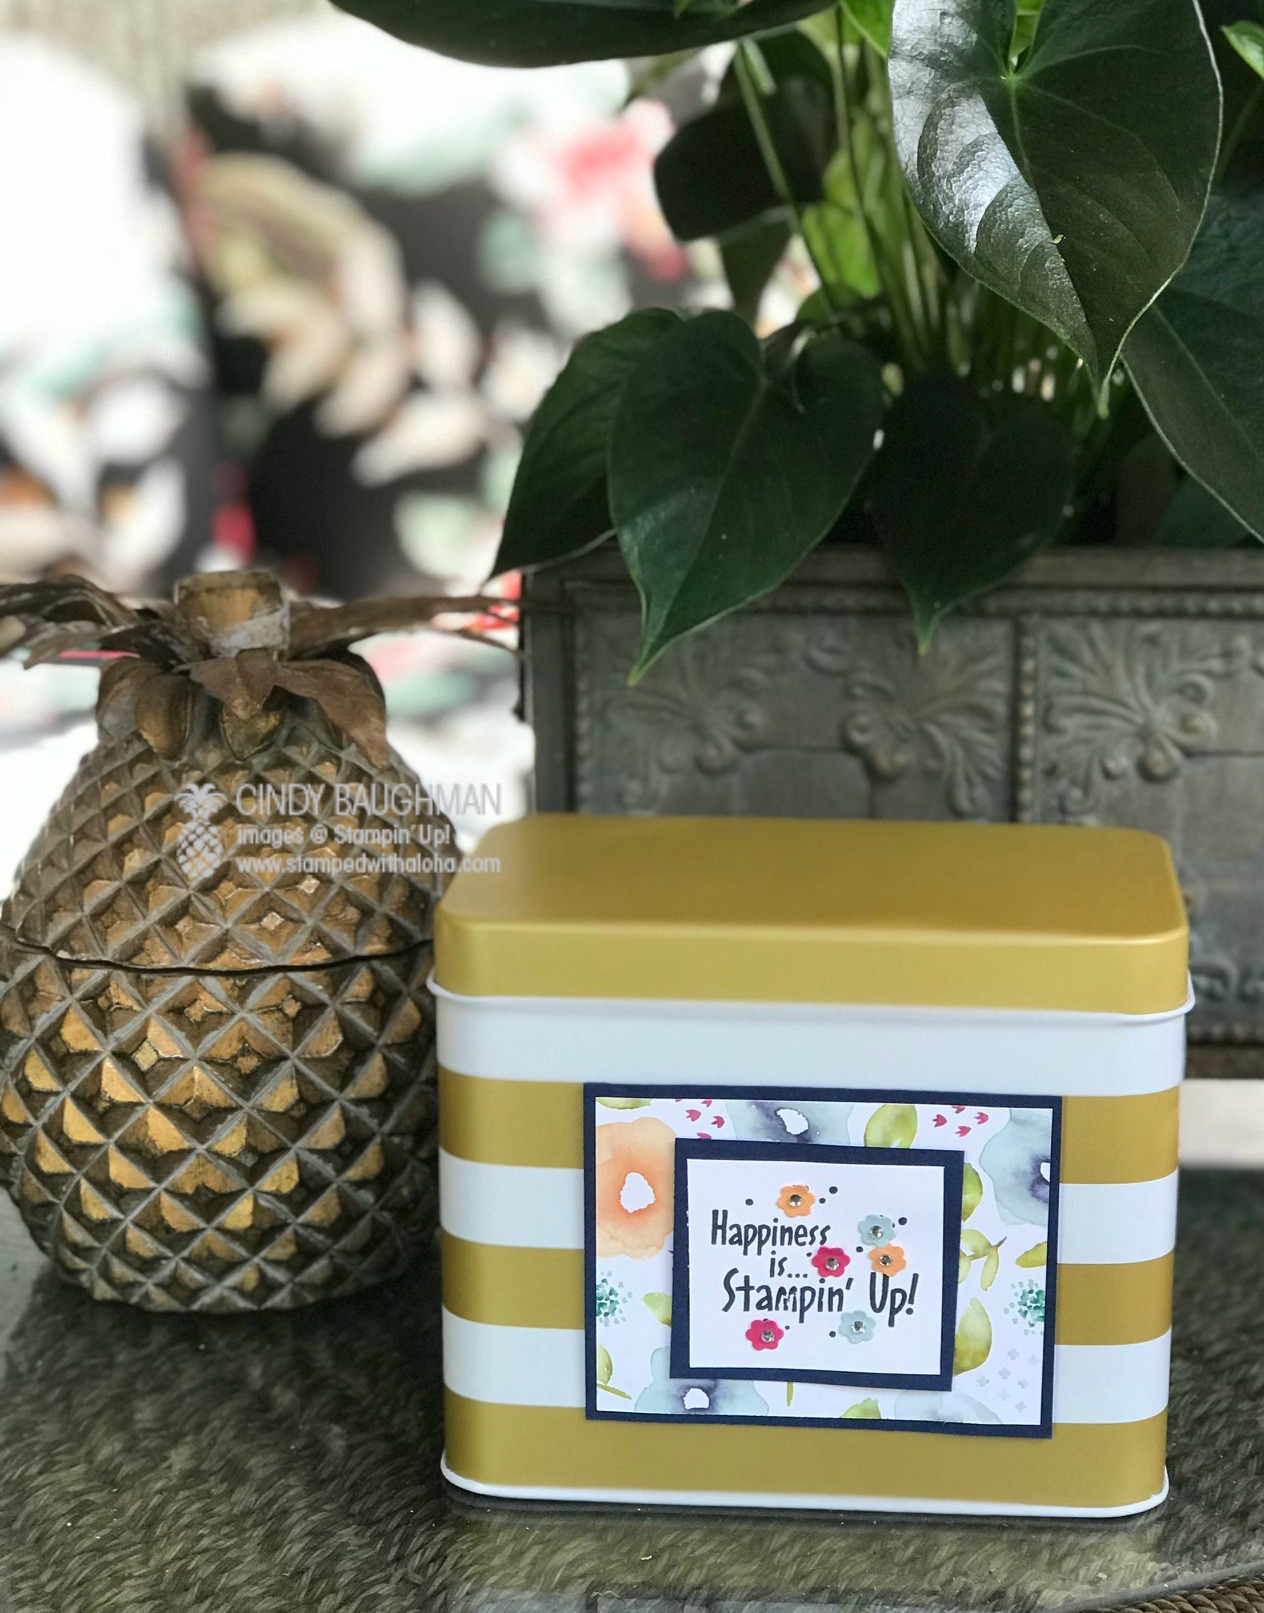 Happiness Is Stampin' Up! - www.stampedwithaloha.com